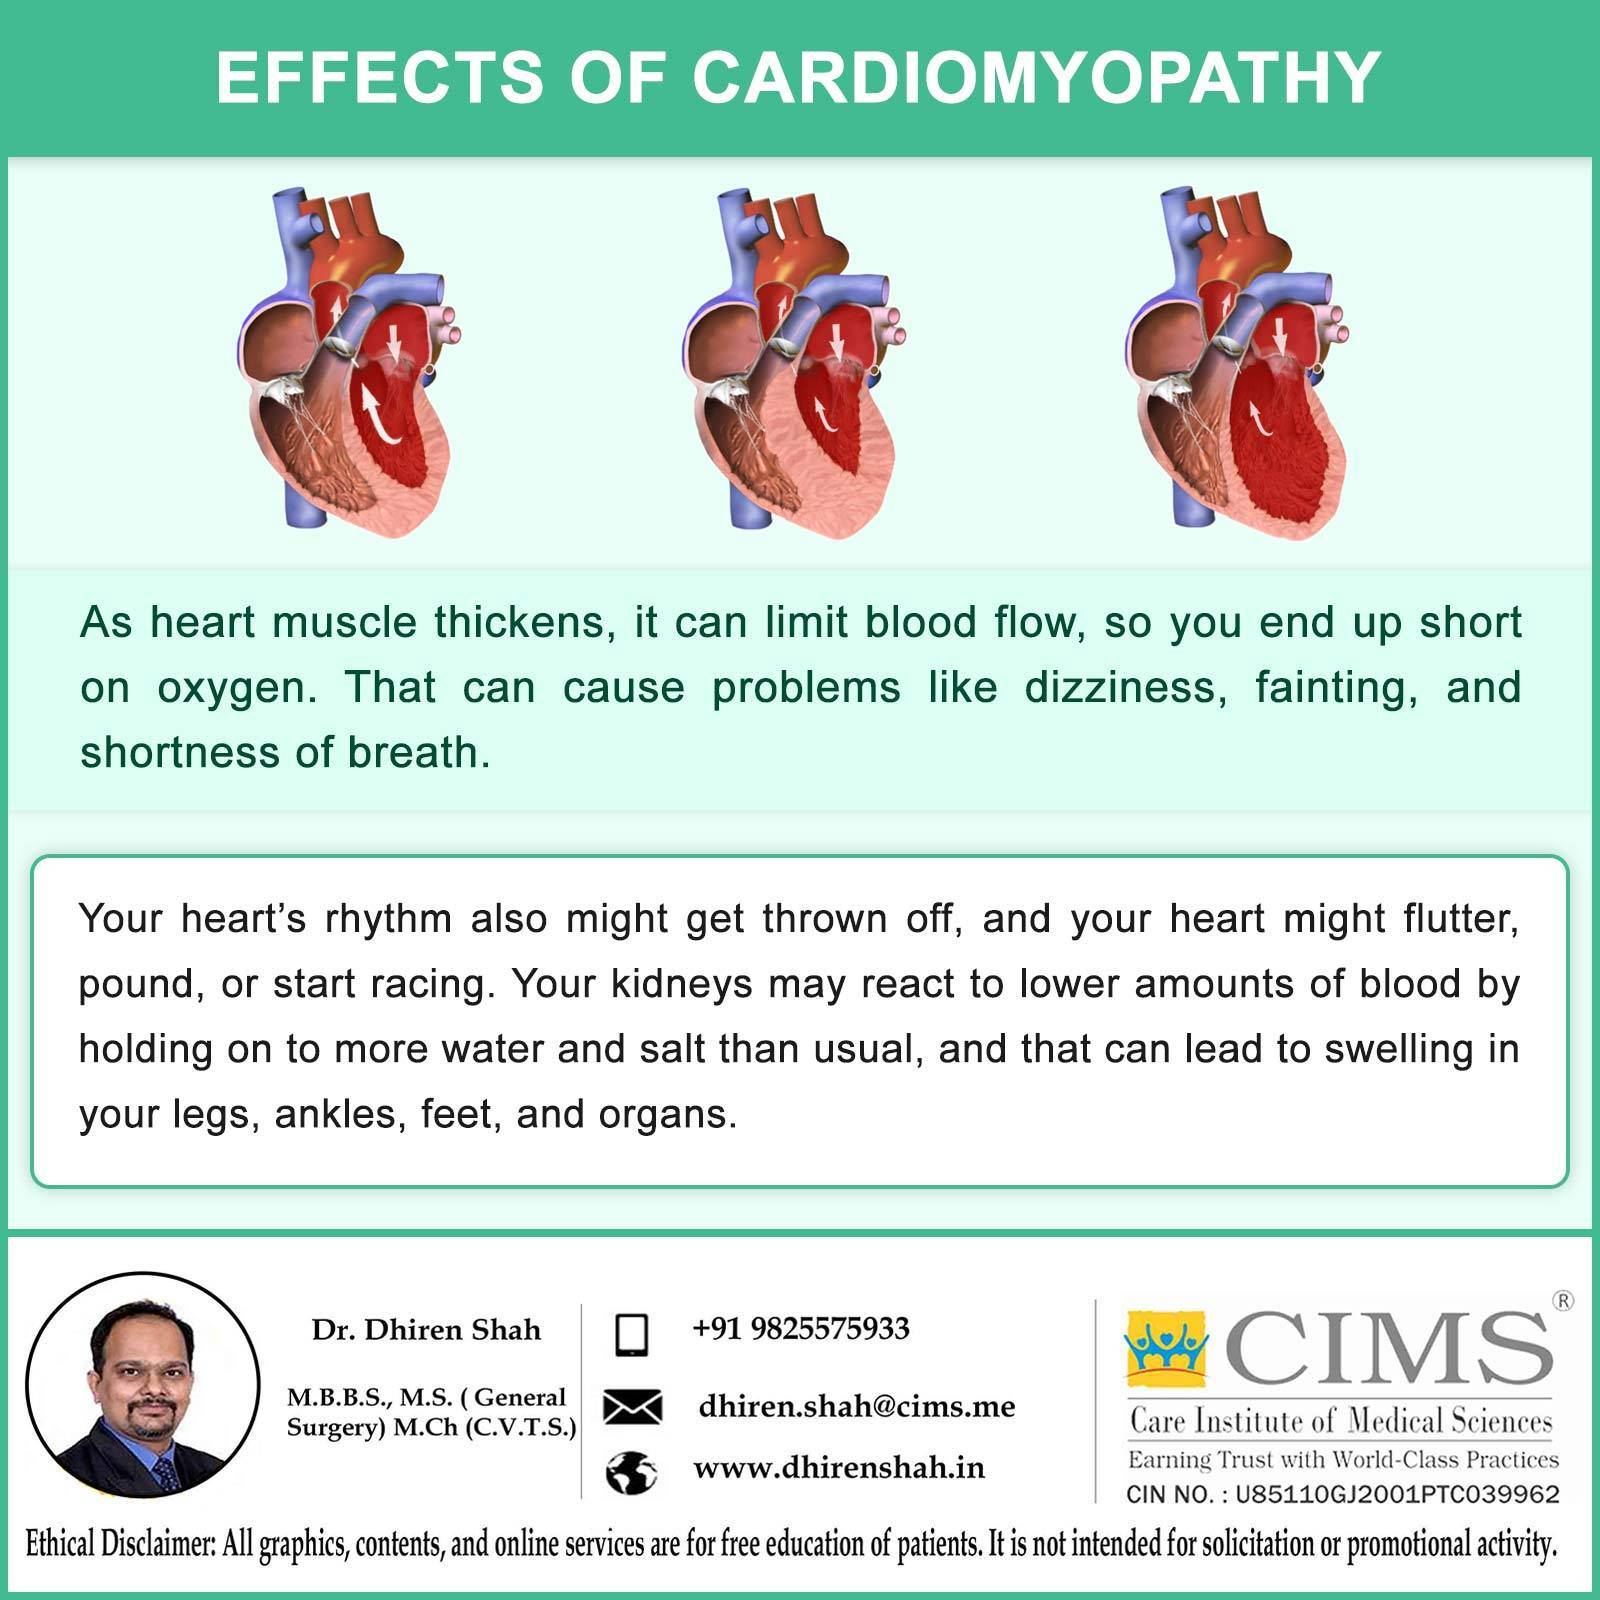 Effects of Cardiomyopathy